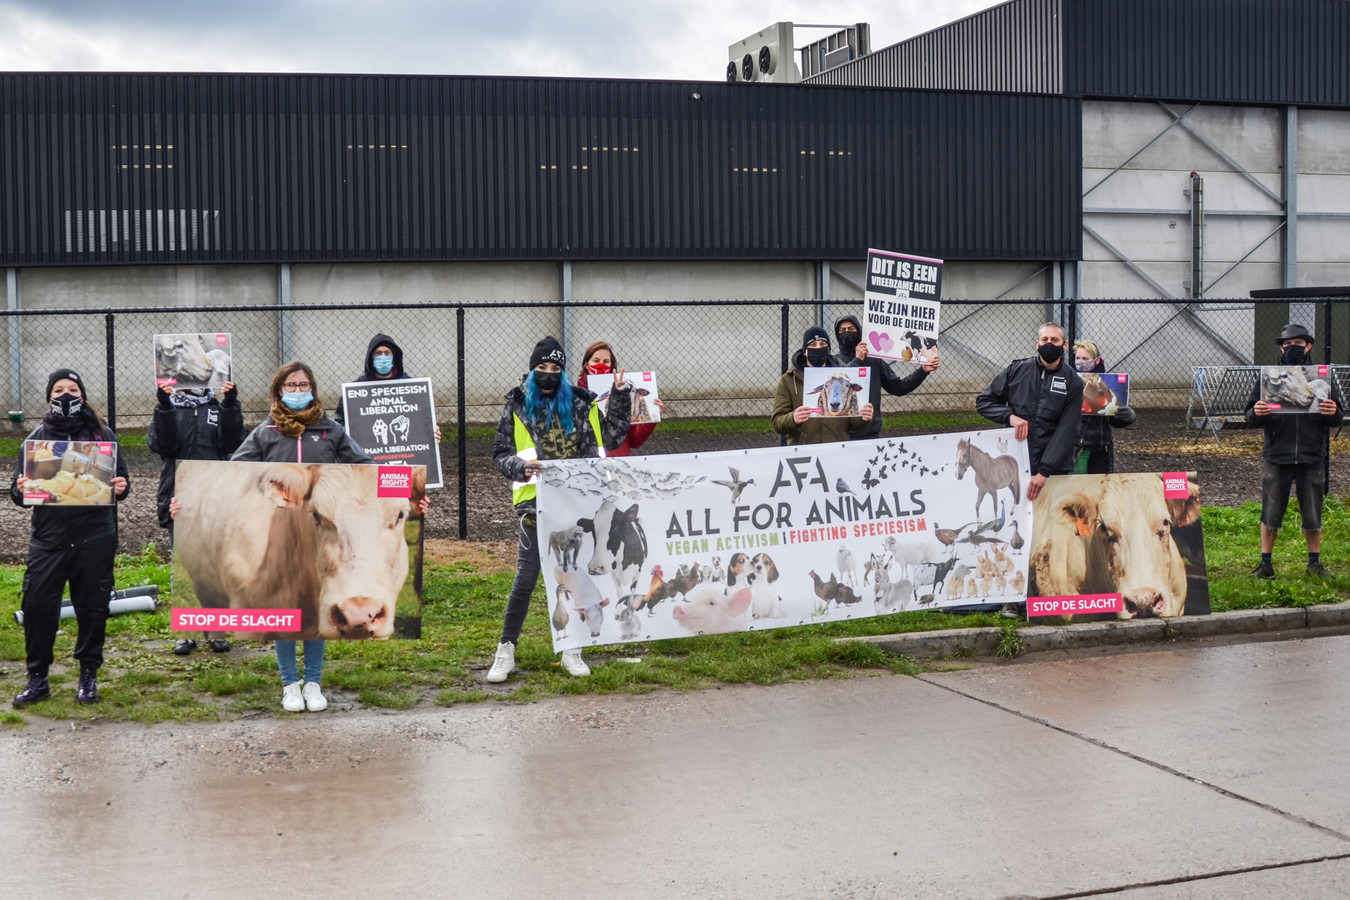 Actievoerders van Animal Rights en All for Animals voeren actie aan slachthuis Moerbeko in Zele.